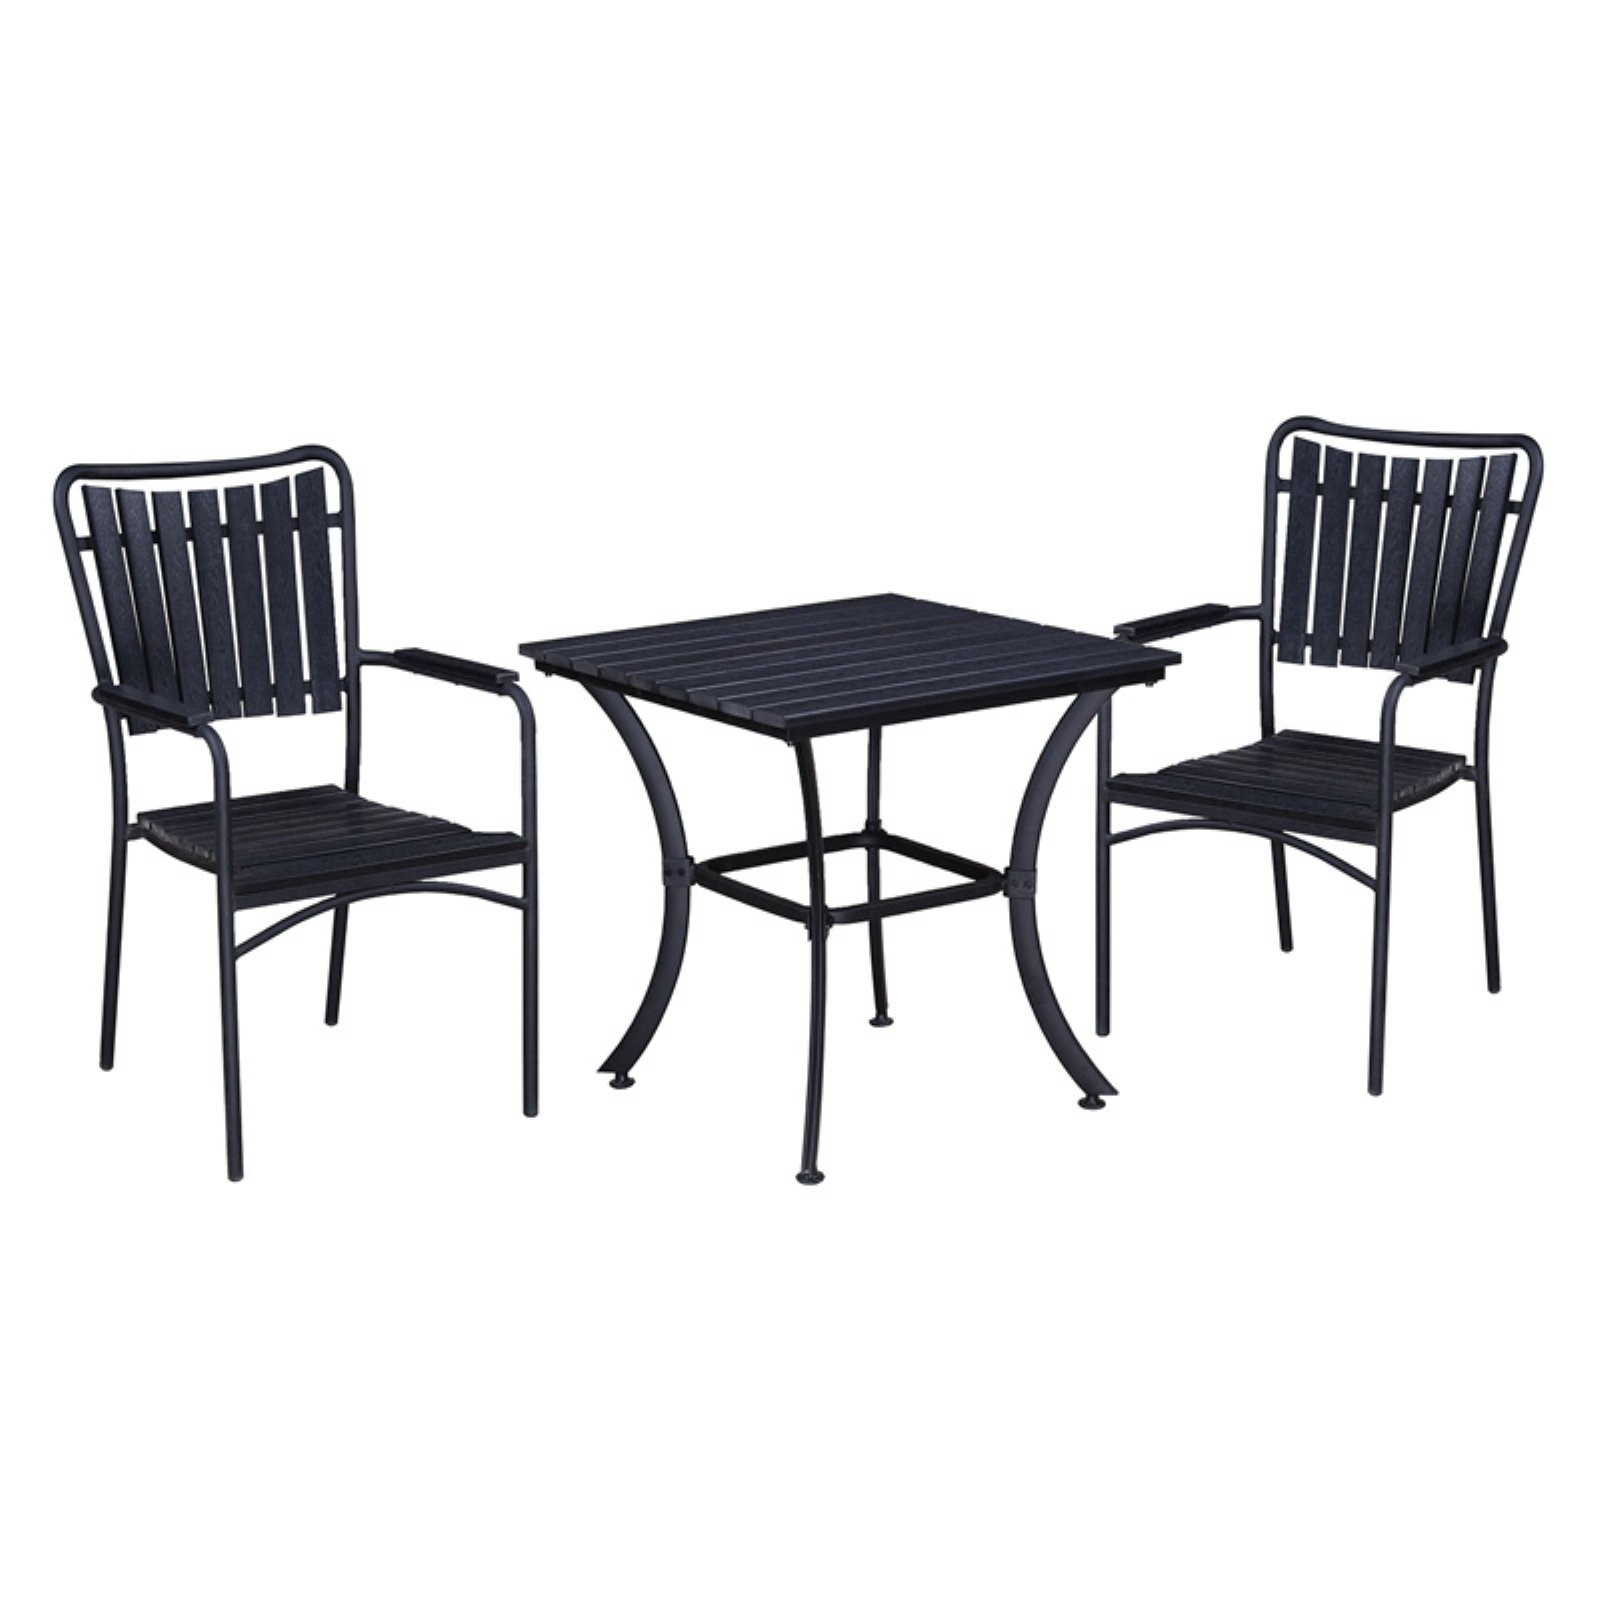 Oakland Living Splat Back Stackable Indoor/Outdoor Square Bistro Set